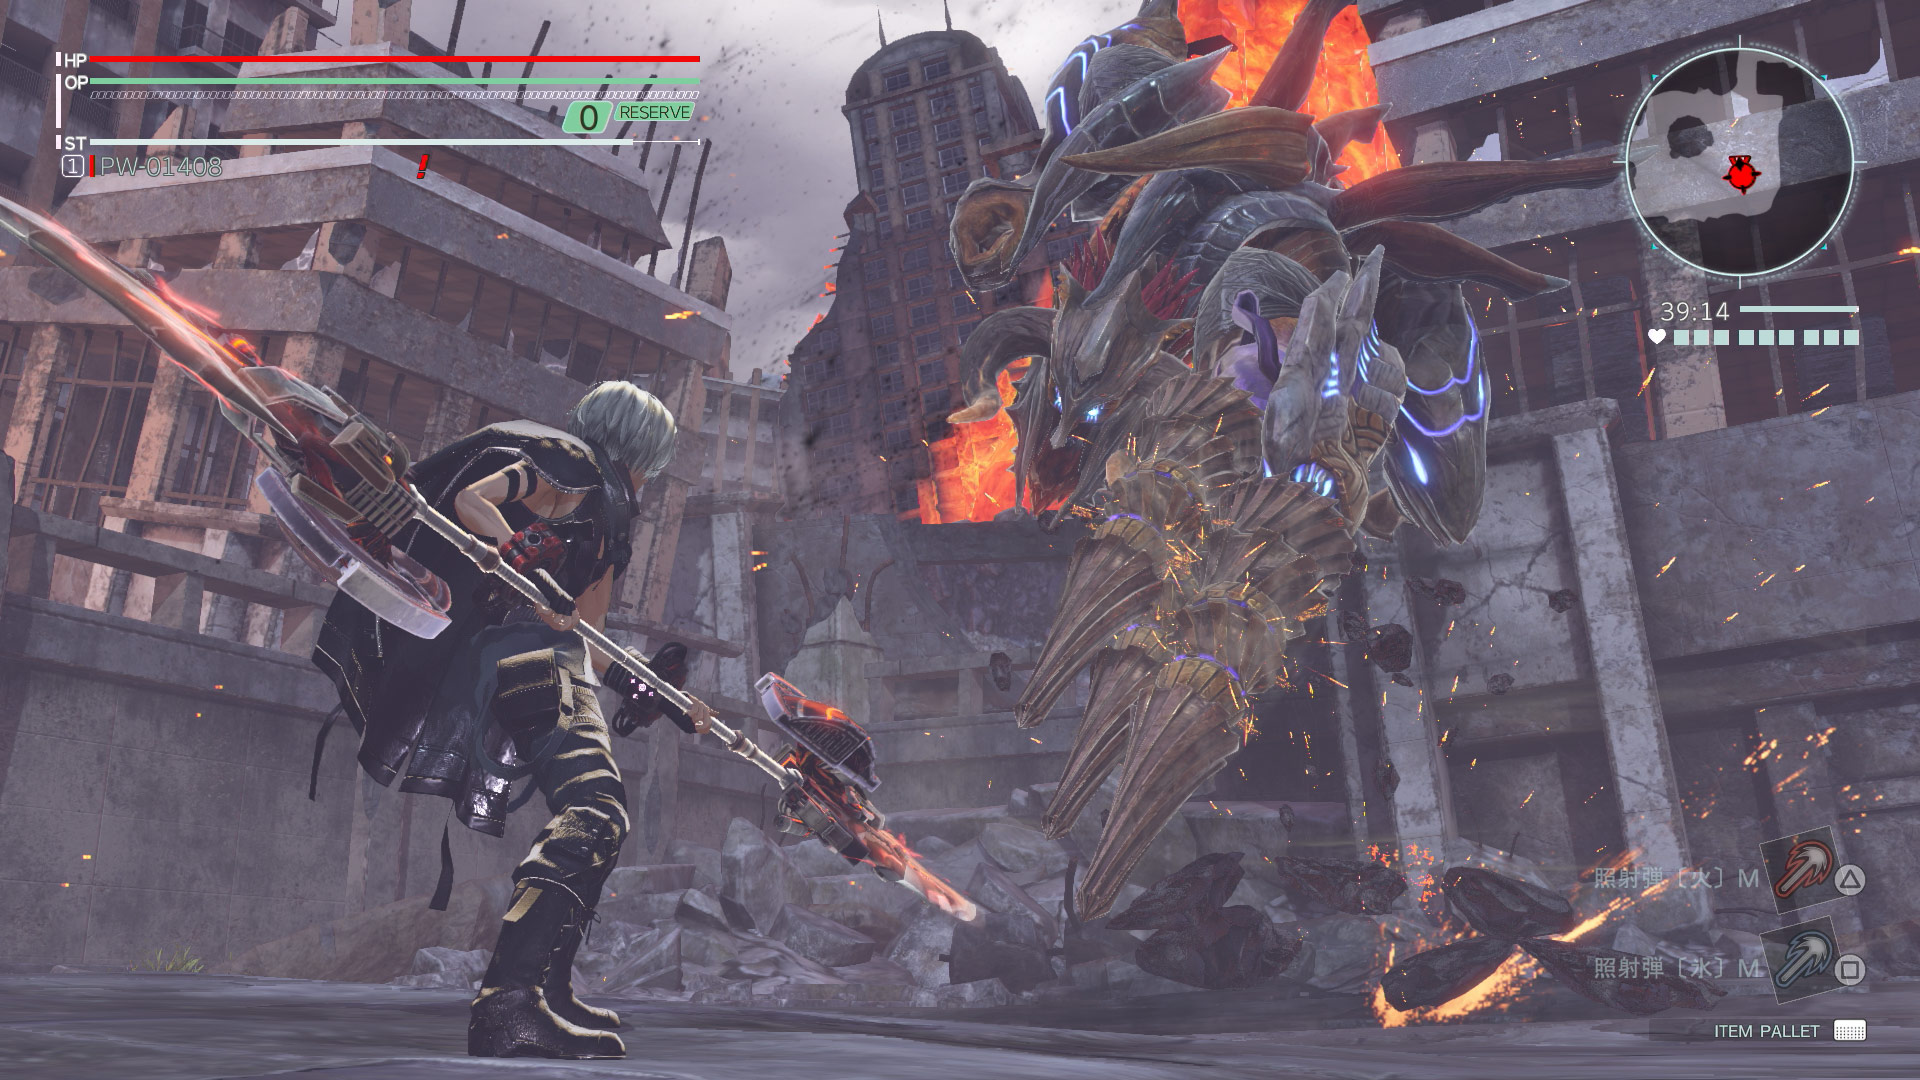 New God Eater 3 Screenshots Shows the Game in a New Light